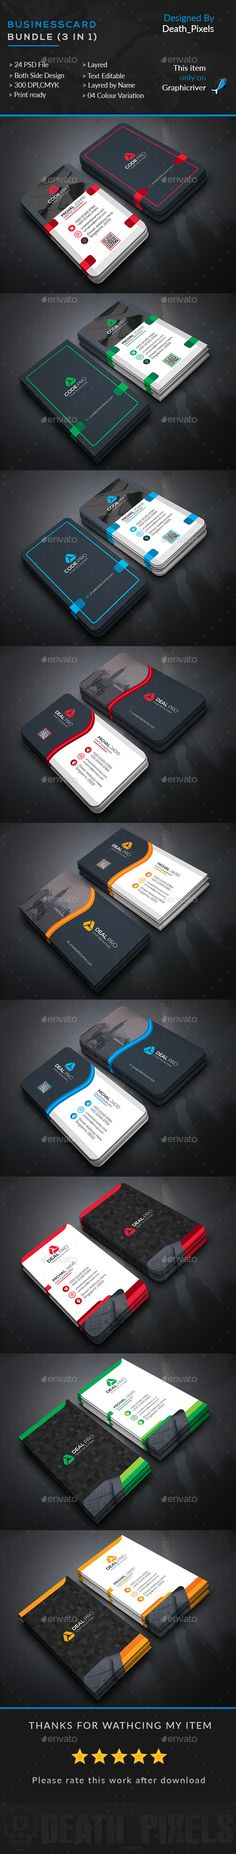 Business Card Bundle (3 in 1) - Business Card Design Template PSD. Download here: http://graphicriver.net/item/business-card-bundle-3-in-1/16501334?s_rank=6&ref=yinkira